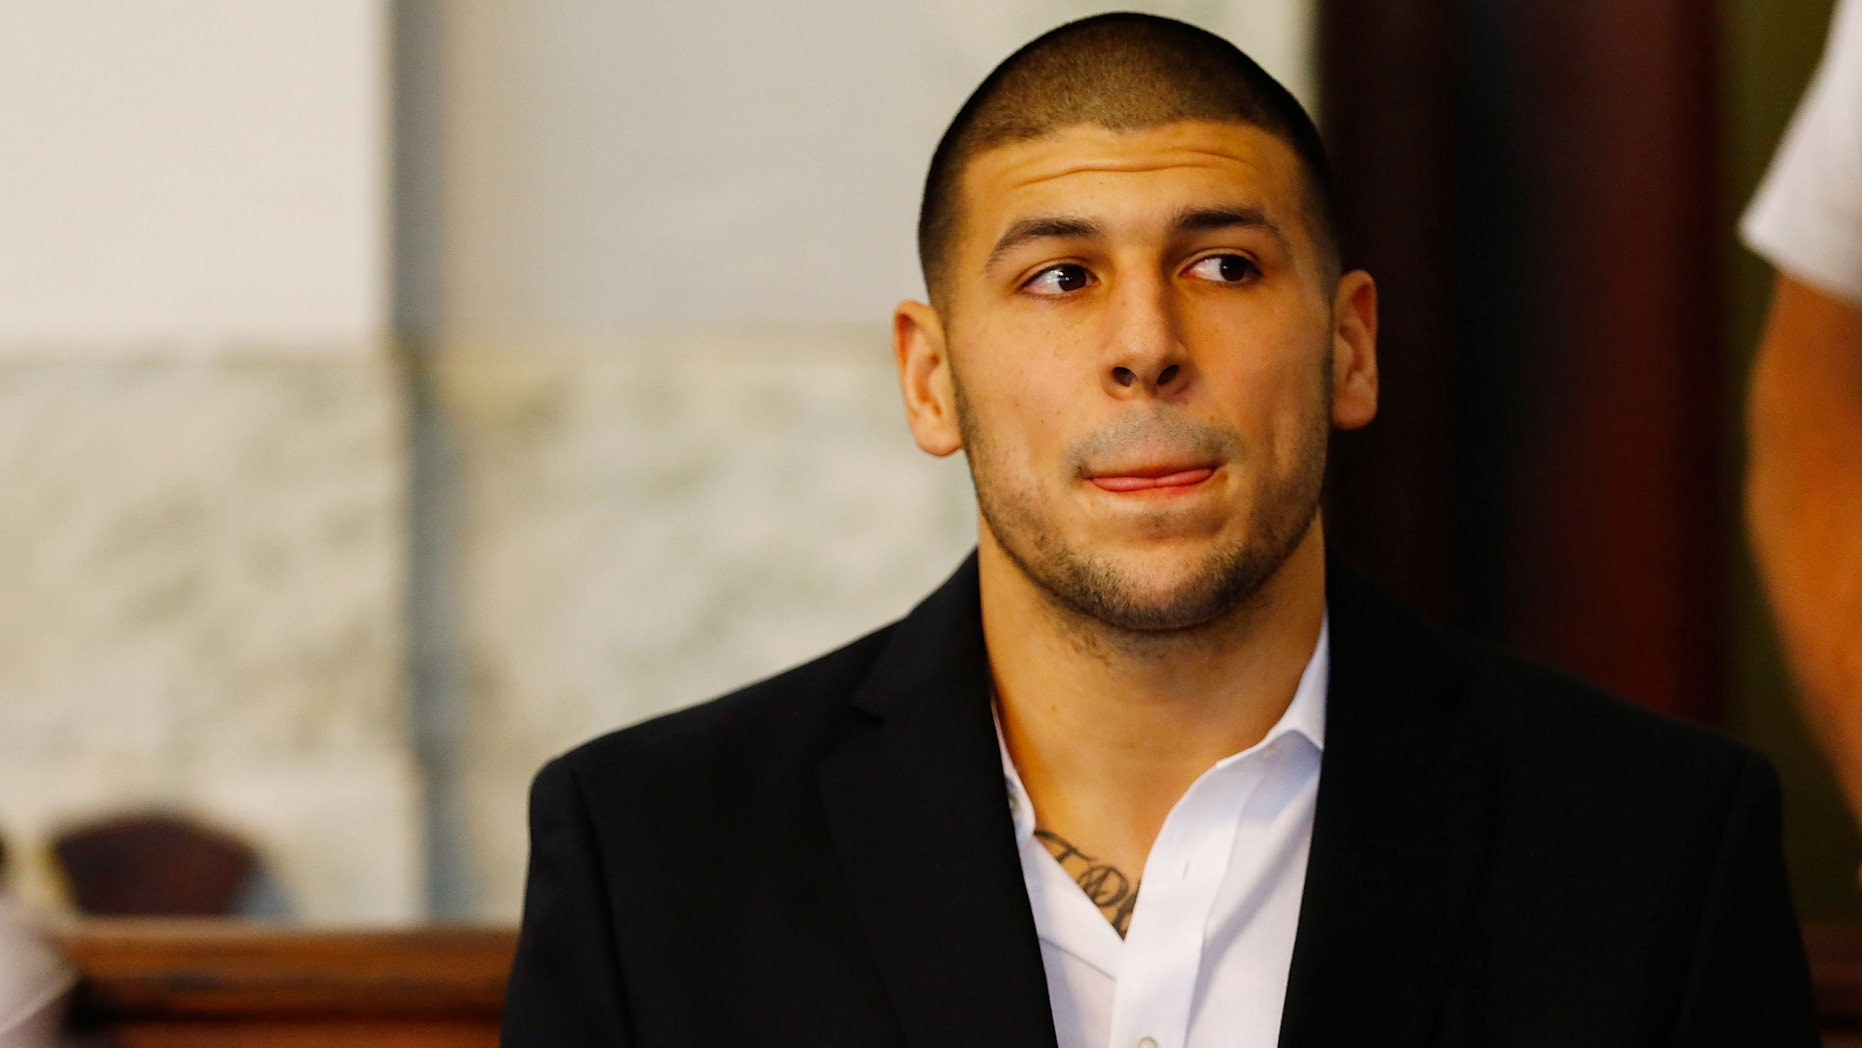 Aaron Hernandez during a hearing on August 22, 2013 in North Attleboro, Massachusetts.